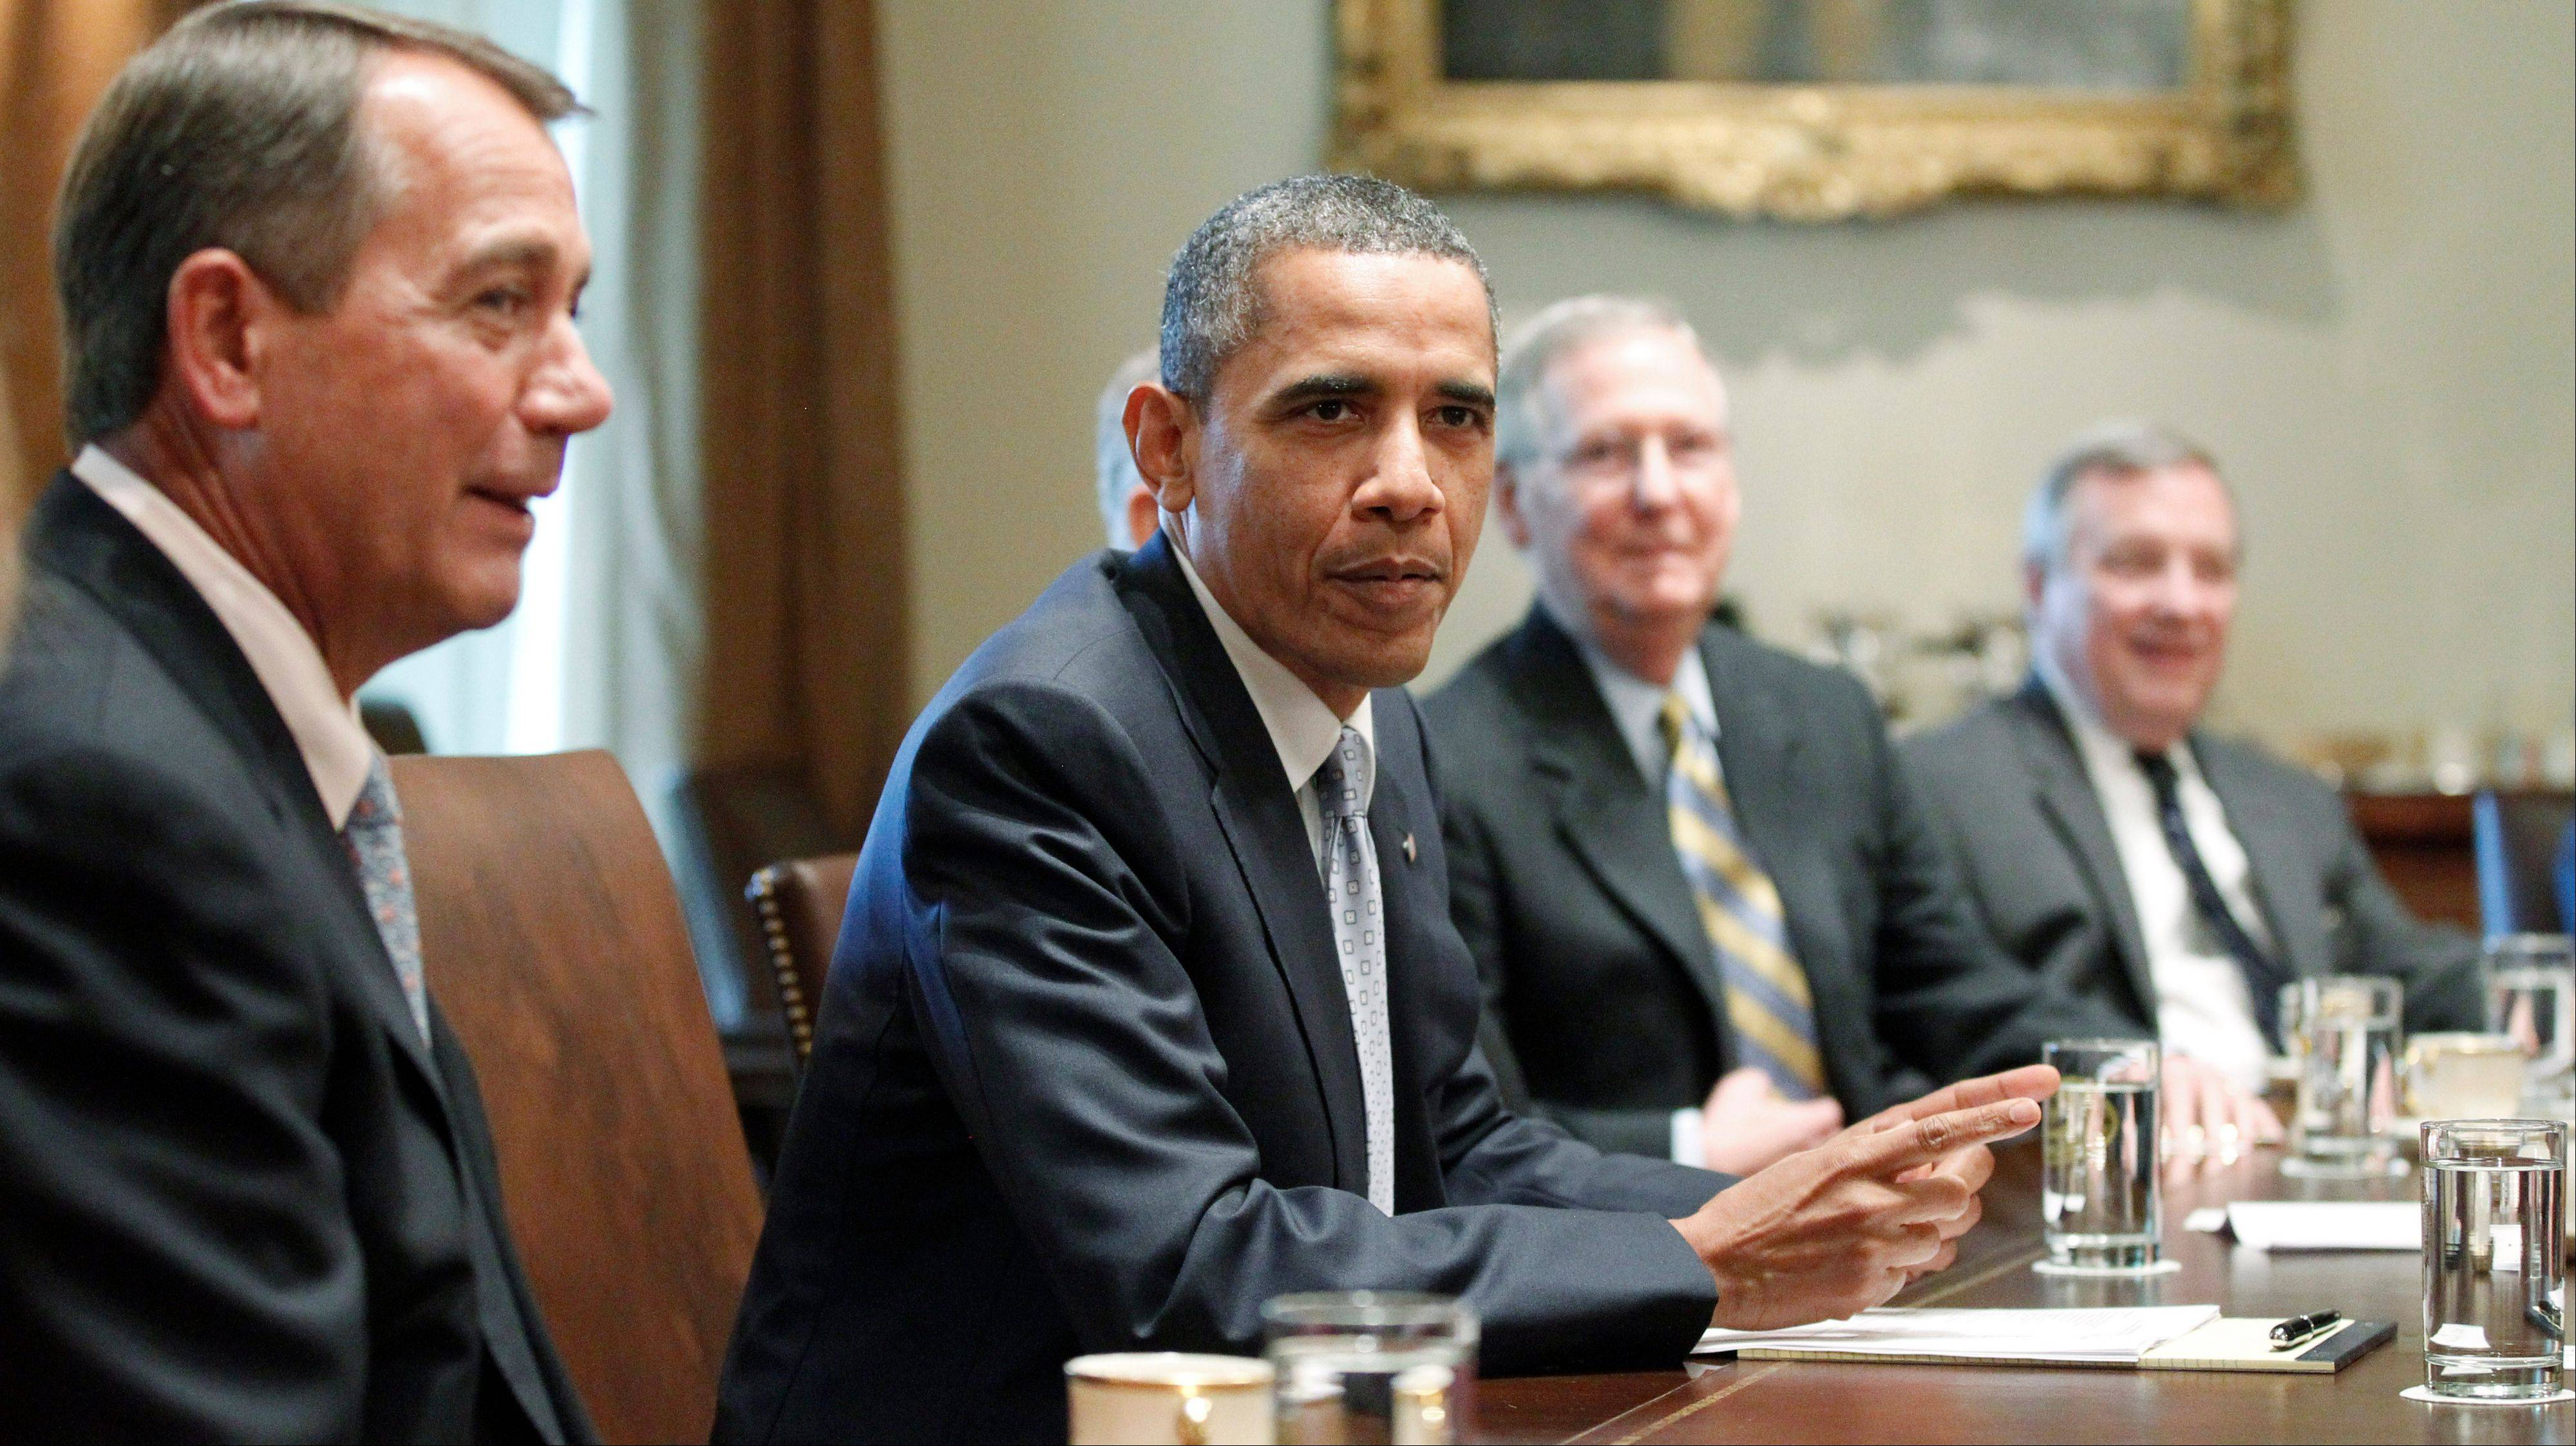 President Barack Obama sits with House Speaker John Boehner, Senate Minority Leader Mitch McConnell and Illinois Sen. Dick Durbin in Wednesday's debt reduction talks at the White House.